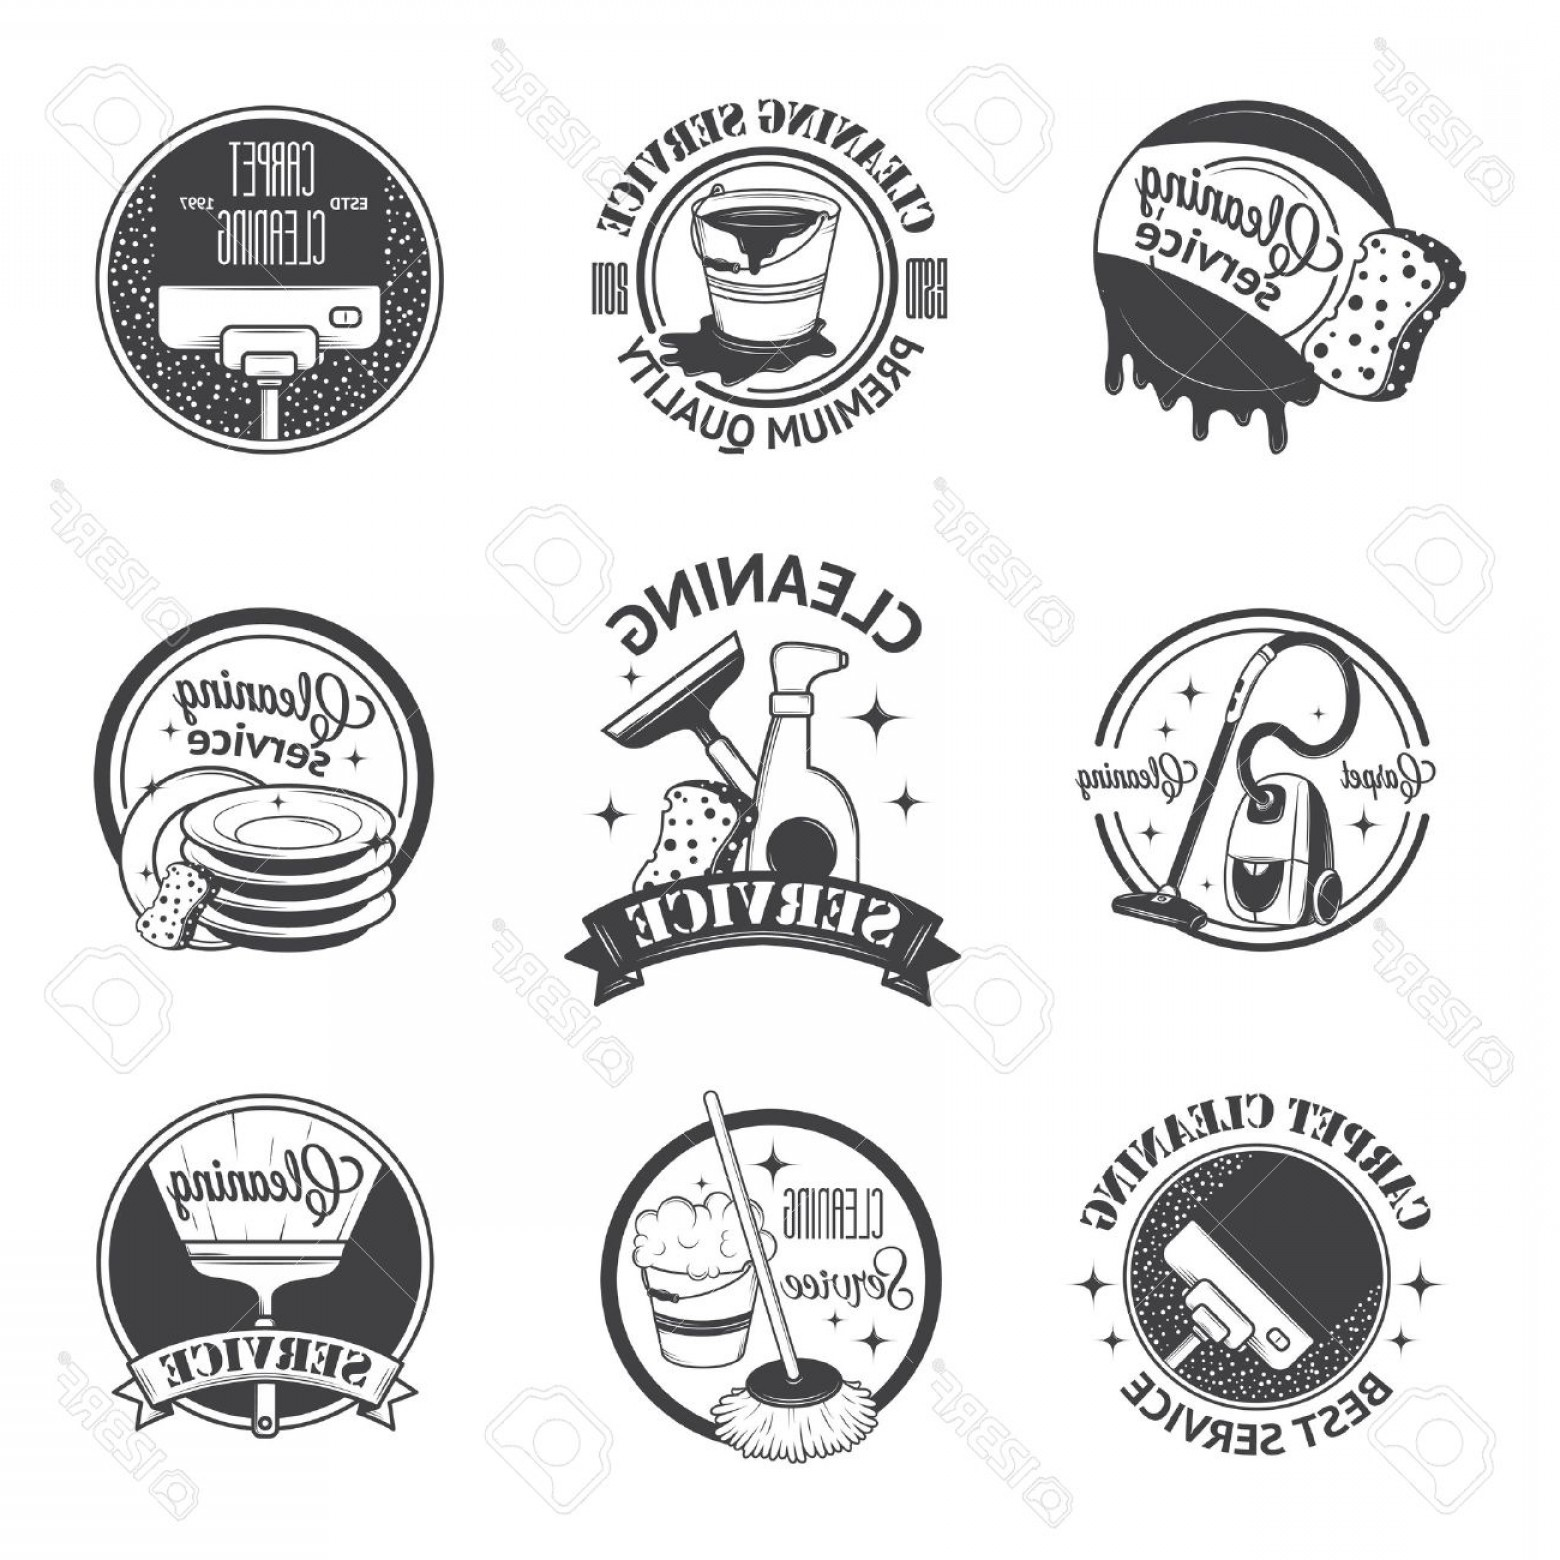 Cleaning Logo Vector Art: Photostock Vector Set Of Vintage Logos Labels And Badges Cleaning Services